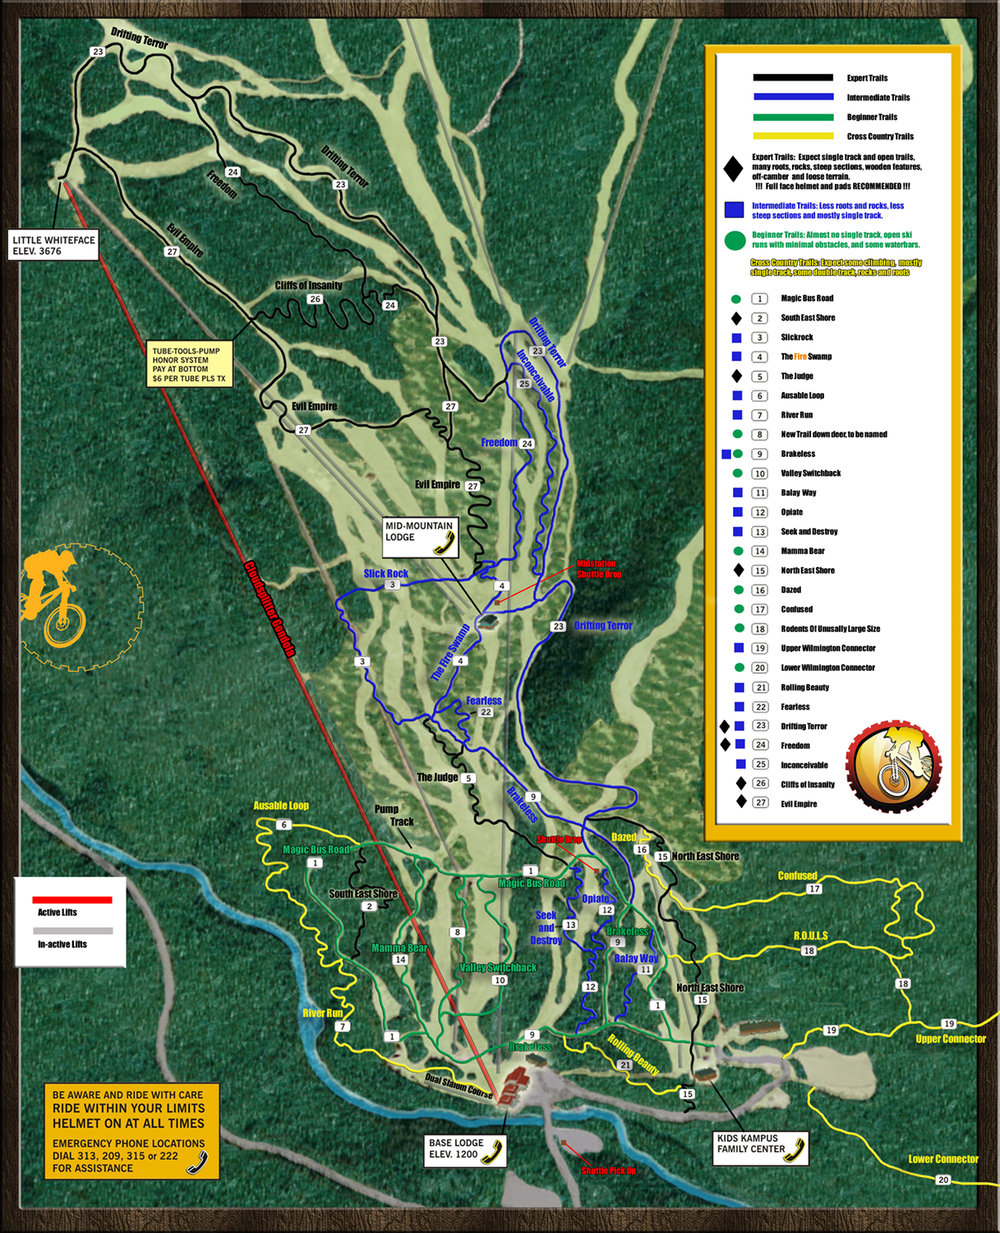 whiteface-mtn-biking-map.jpg